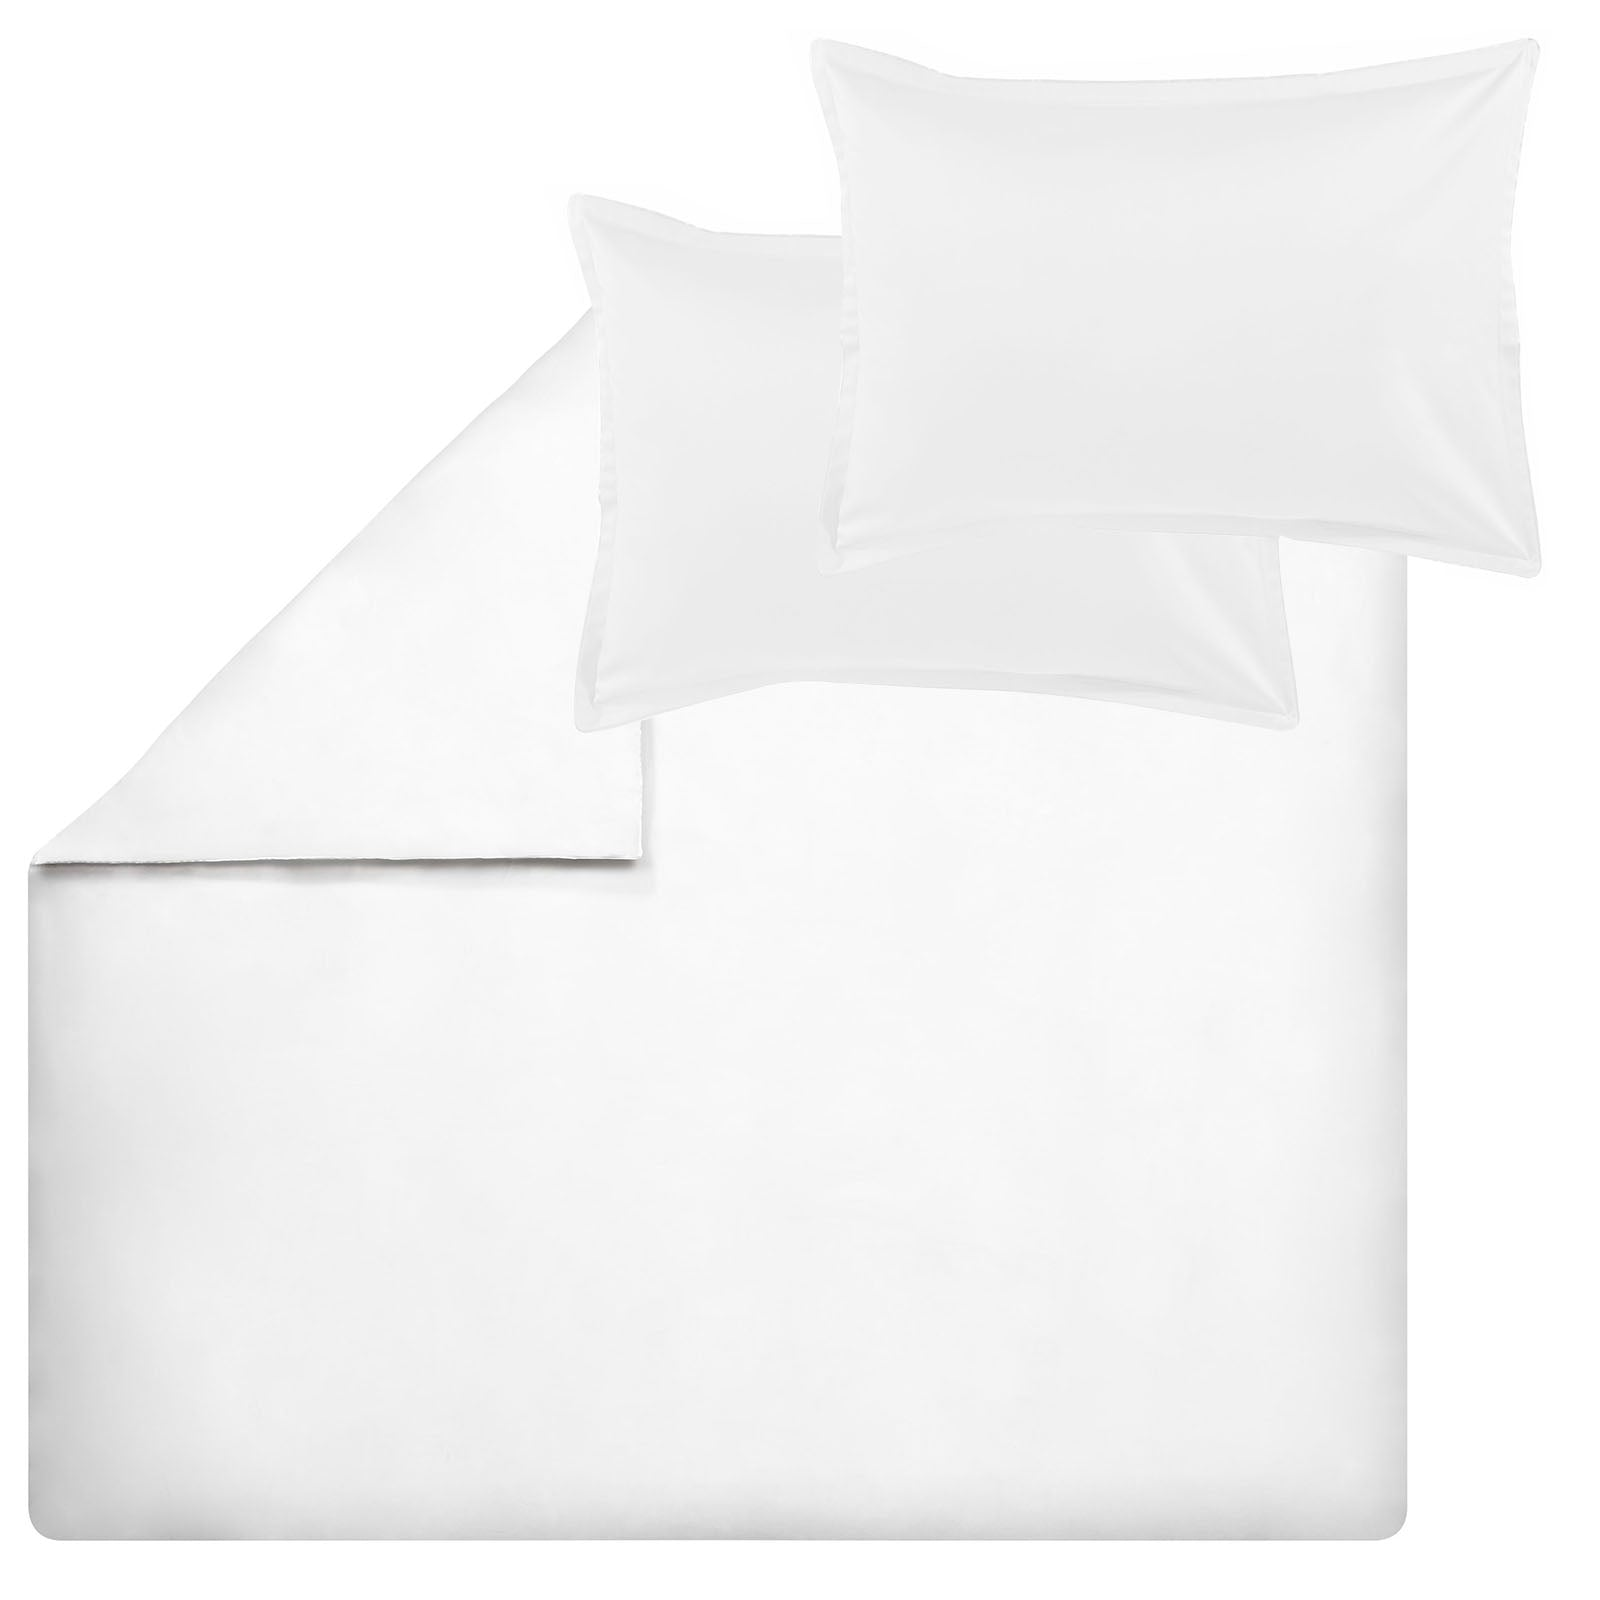 TEO White Duvet Cover Set